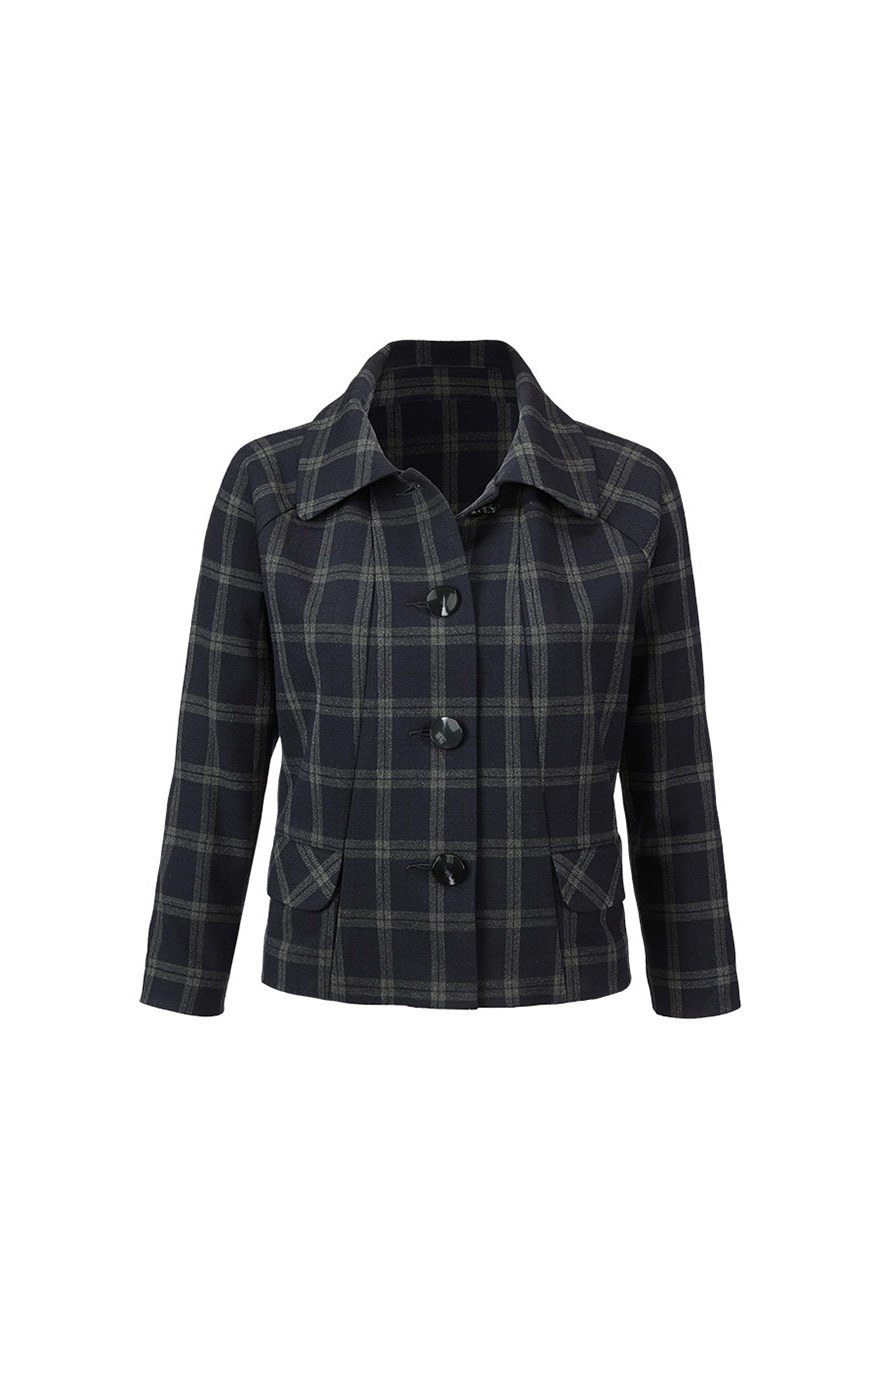 cabi's Connery Jacket